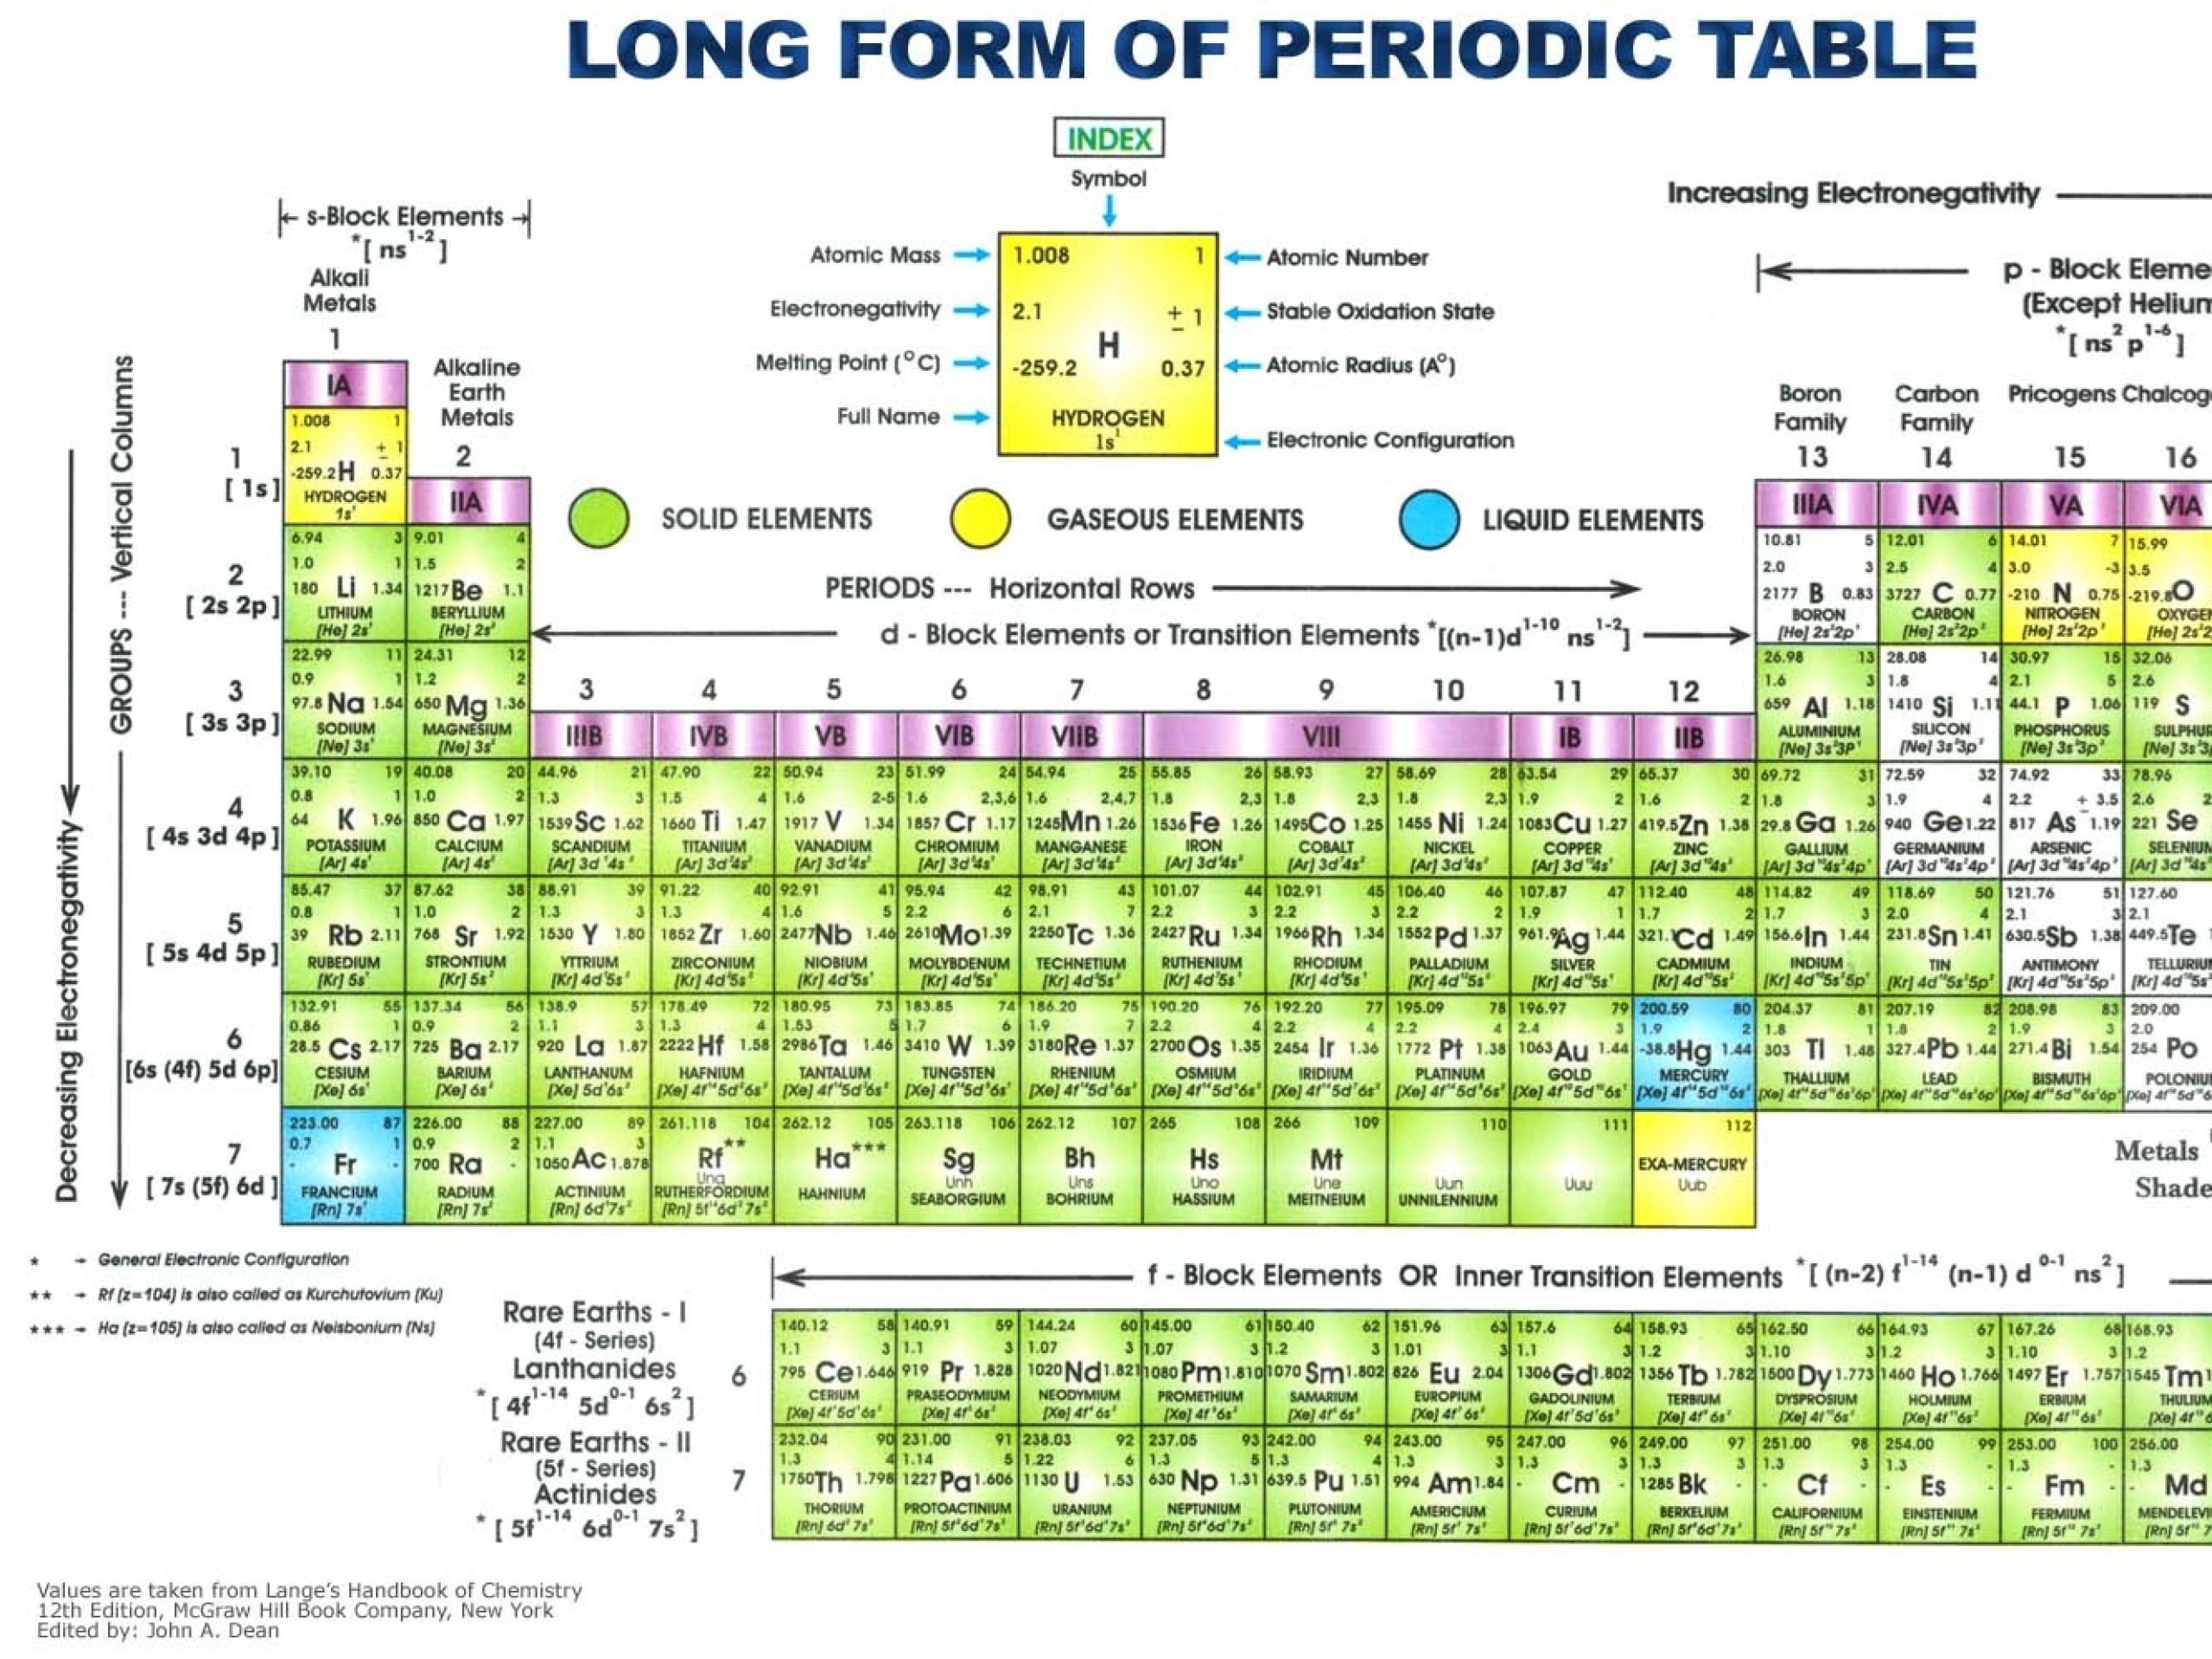 Periodic table wallpaper high resolution 73 images 2560x1600 download wallpaper gamestrikefo Choice Image